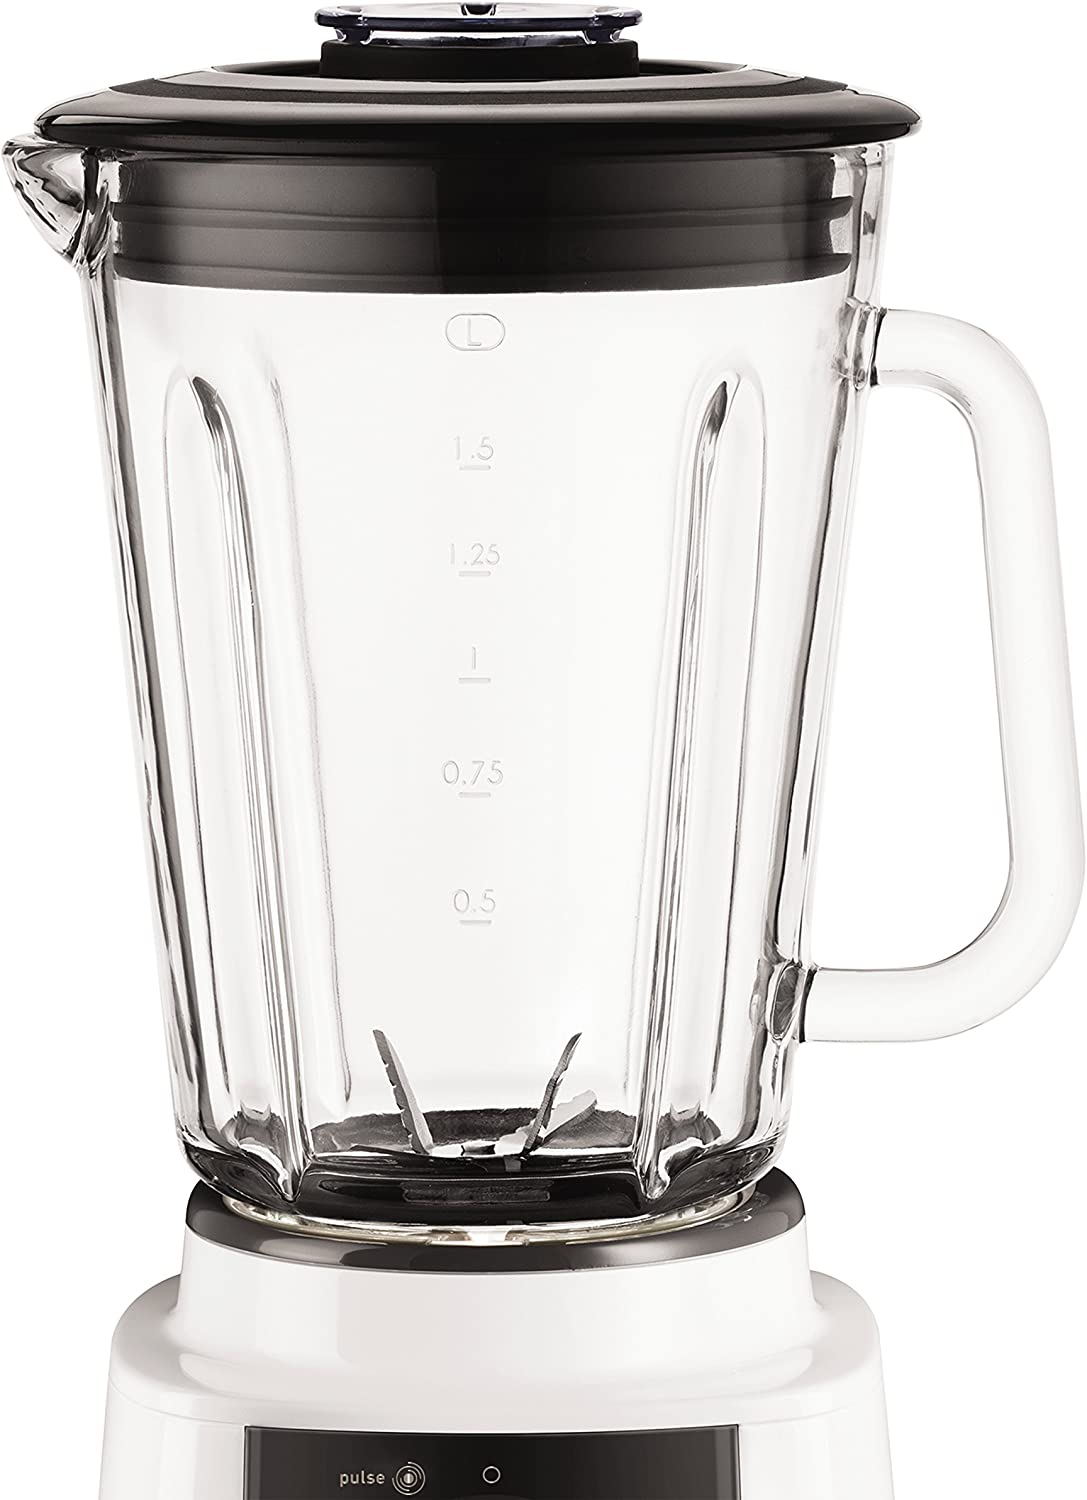 Tefal Mastermix Blender BL800140, 1.5 L High Performance Glass Jug with 20 Speeds and Pulse Function - White by Tefal: Amazon.es: Hogar